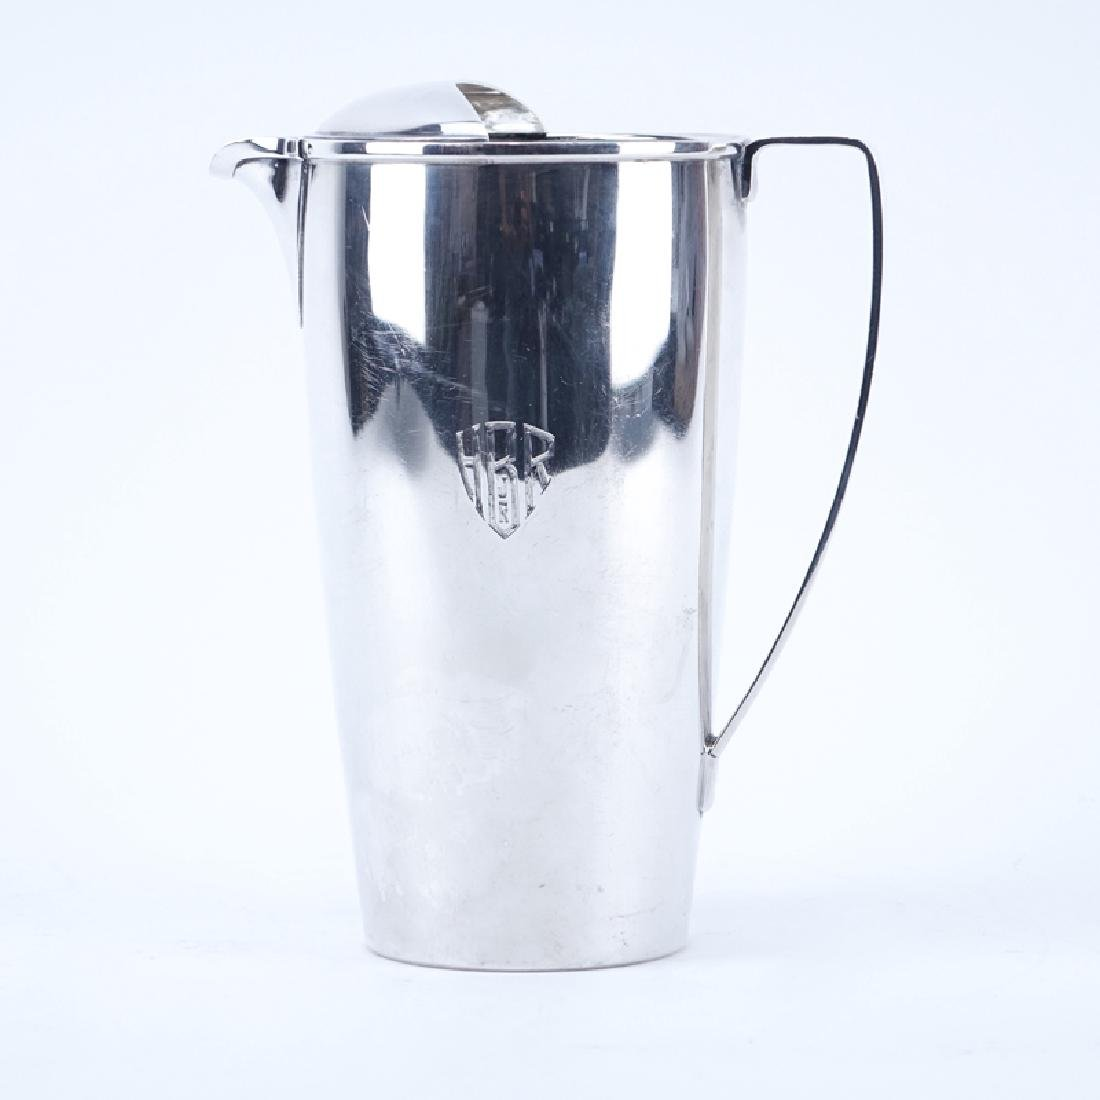 Tiffany and CoSterling Silver Pitcher. Stamped Tiffany